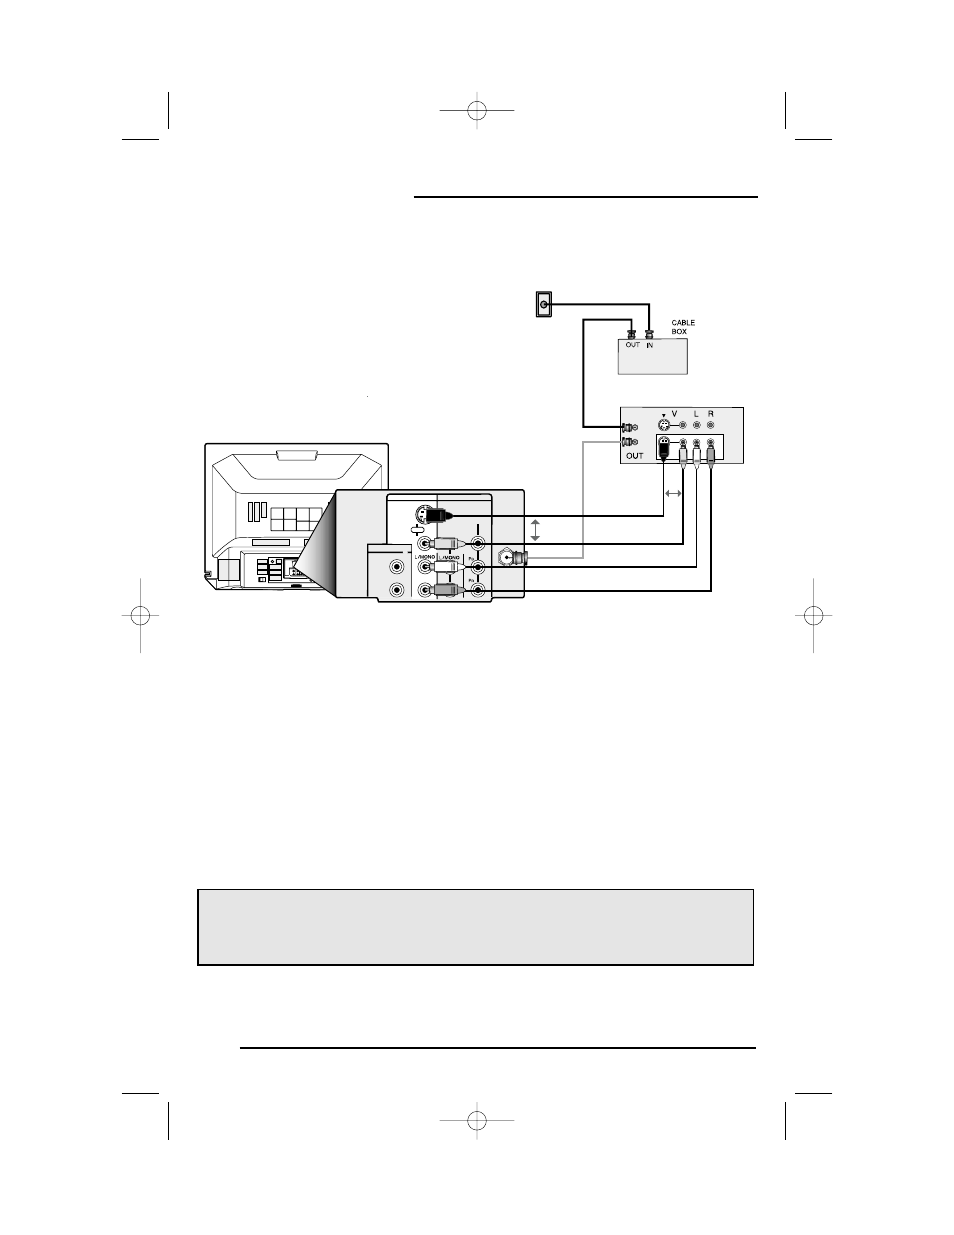 kw avx710 wiring diagram page 2 wiring diagram and schematics furnace wiring diagram jvc kw av60bt wiring harness air conditioner compressor wiring pressure switch wiring diagram kw avx710 wiring